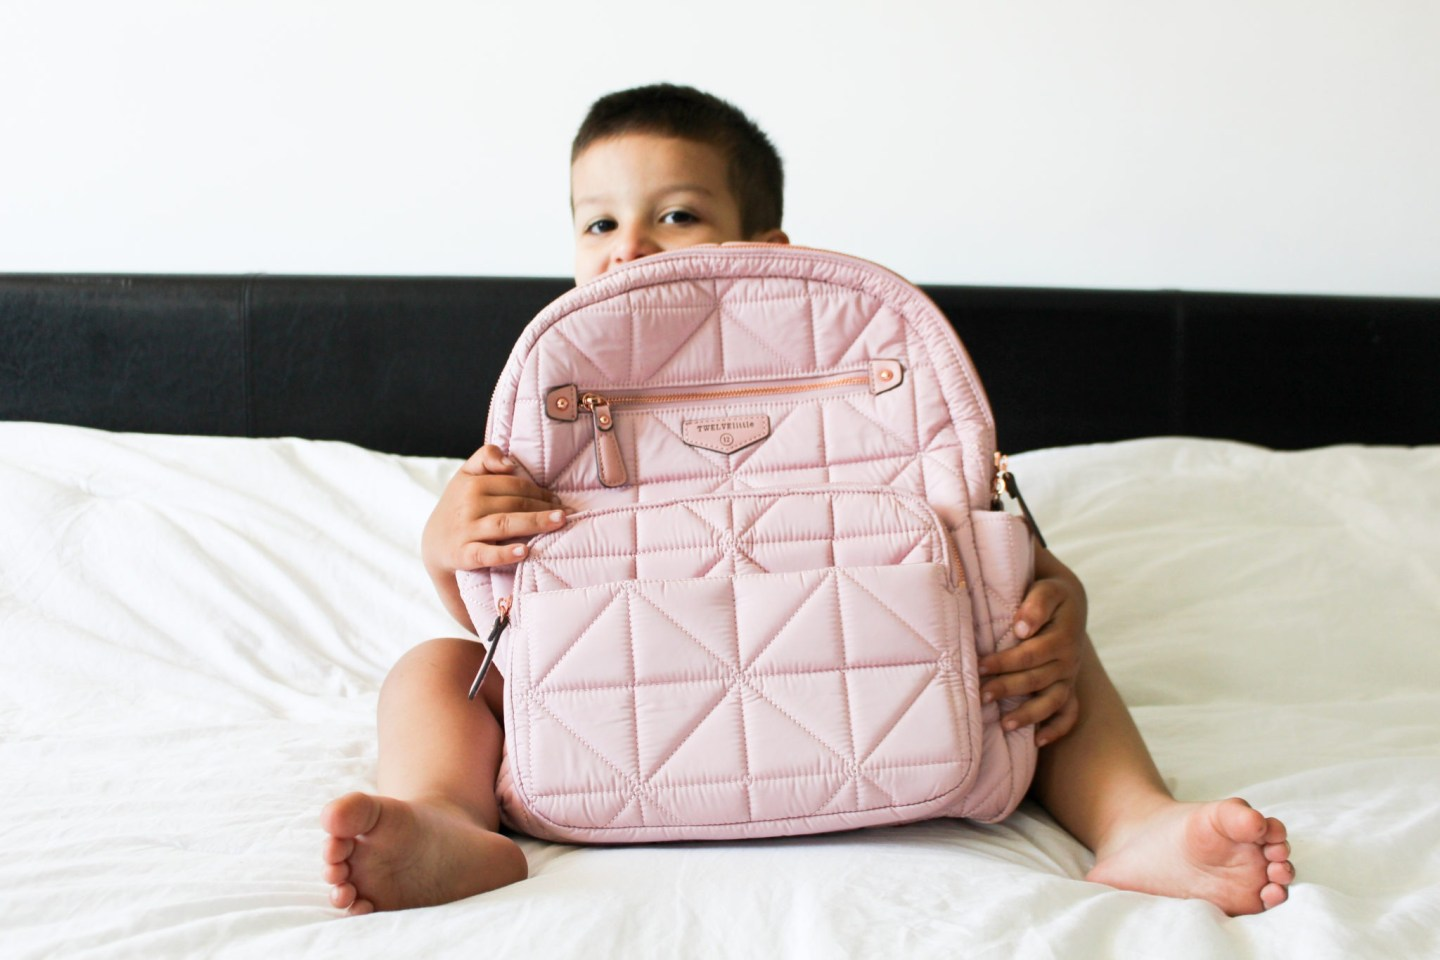 TWELVElittle Companion Backpack — The Best Diaper Bag